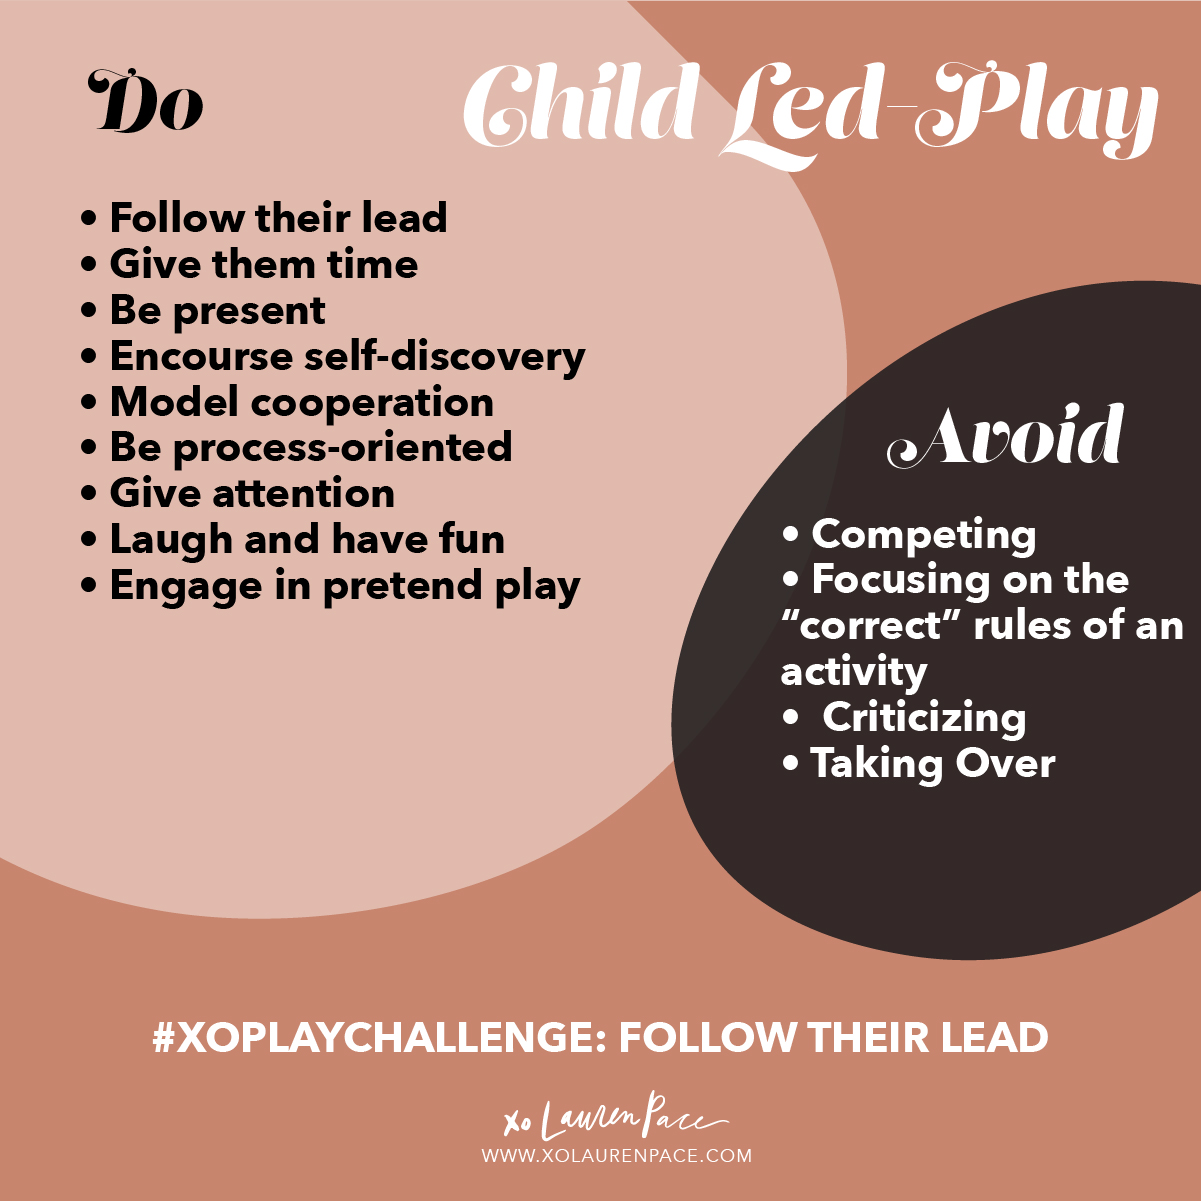 Child-led play is extremely beneficial. It is the way for them to discover what they love, who they are and make sense of the world around them. Our role in child-led play is to FOLLOW THEIR LEAD. We can also support them when needed, keep them safe, engage in their play.